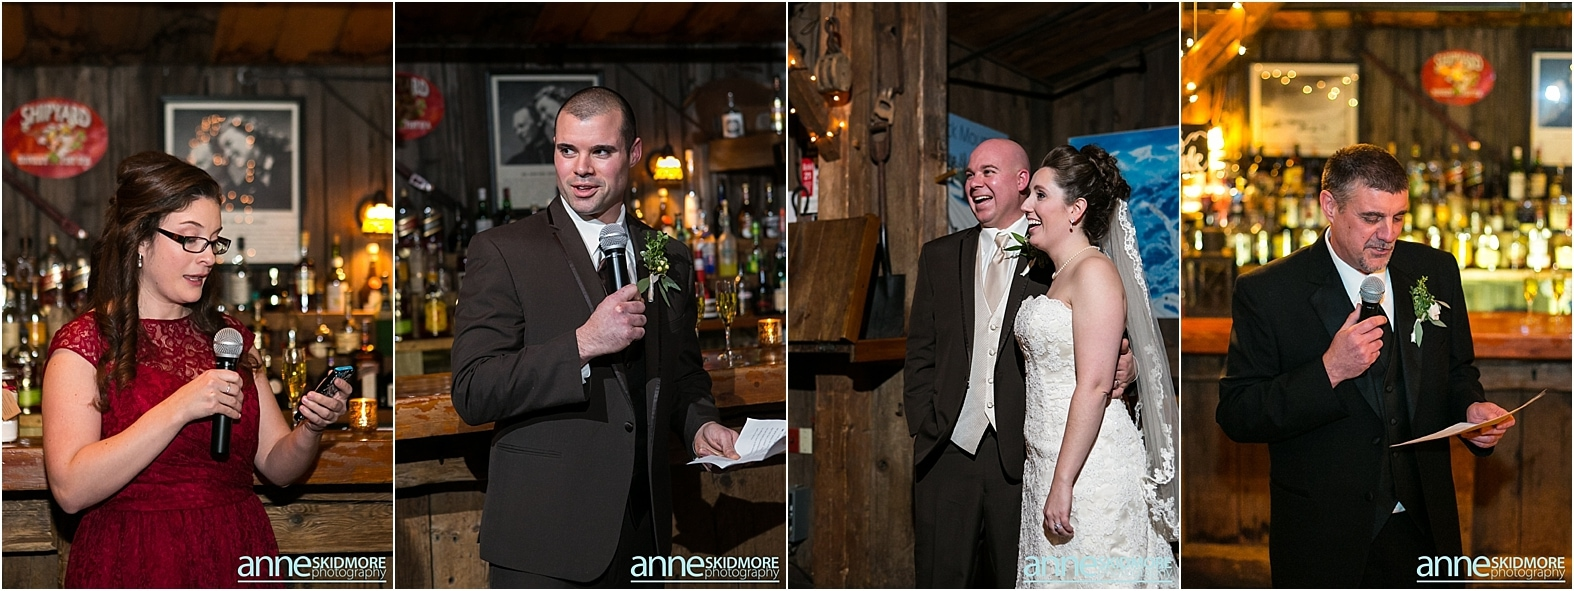 Whitneys_Inn_Wedding_038